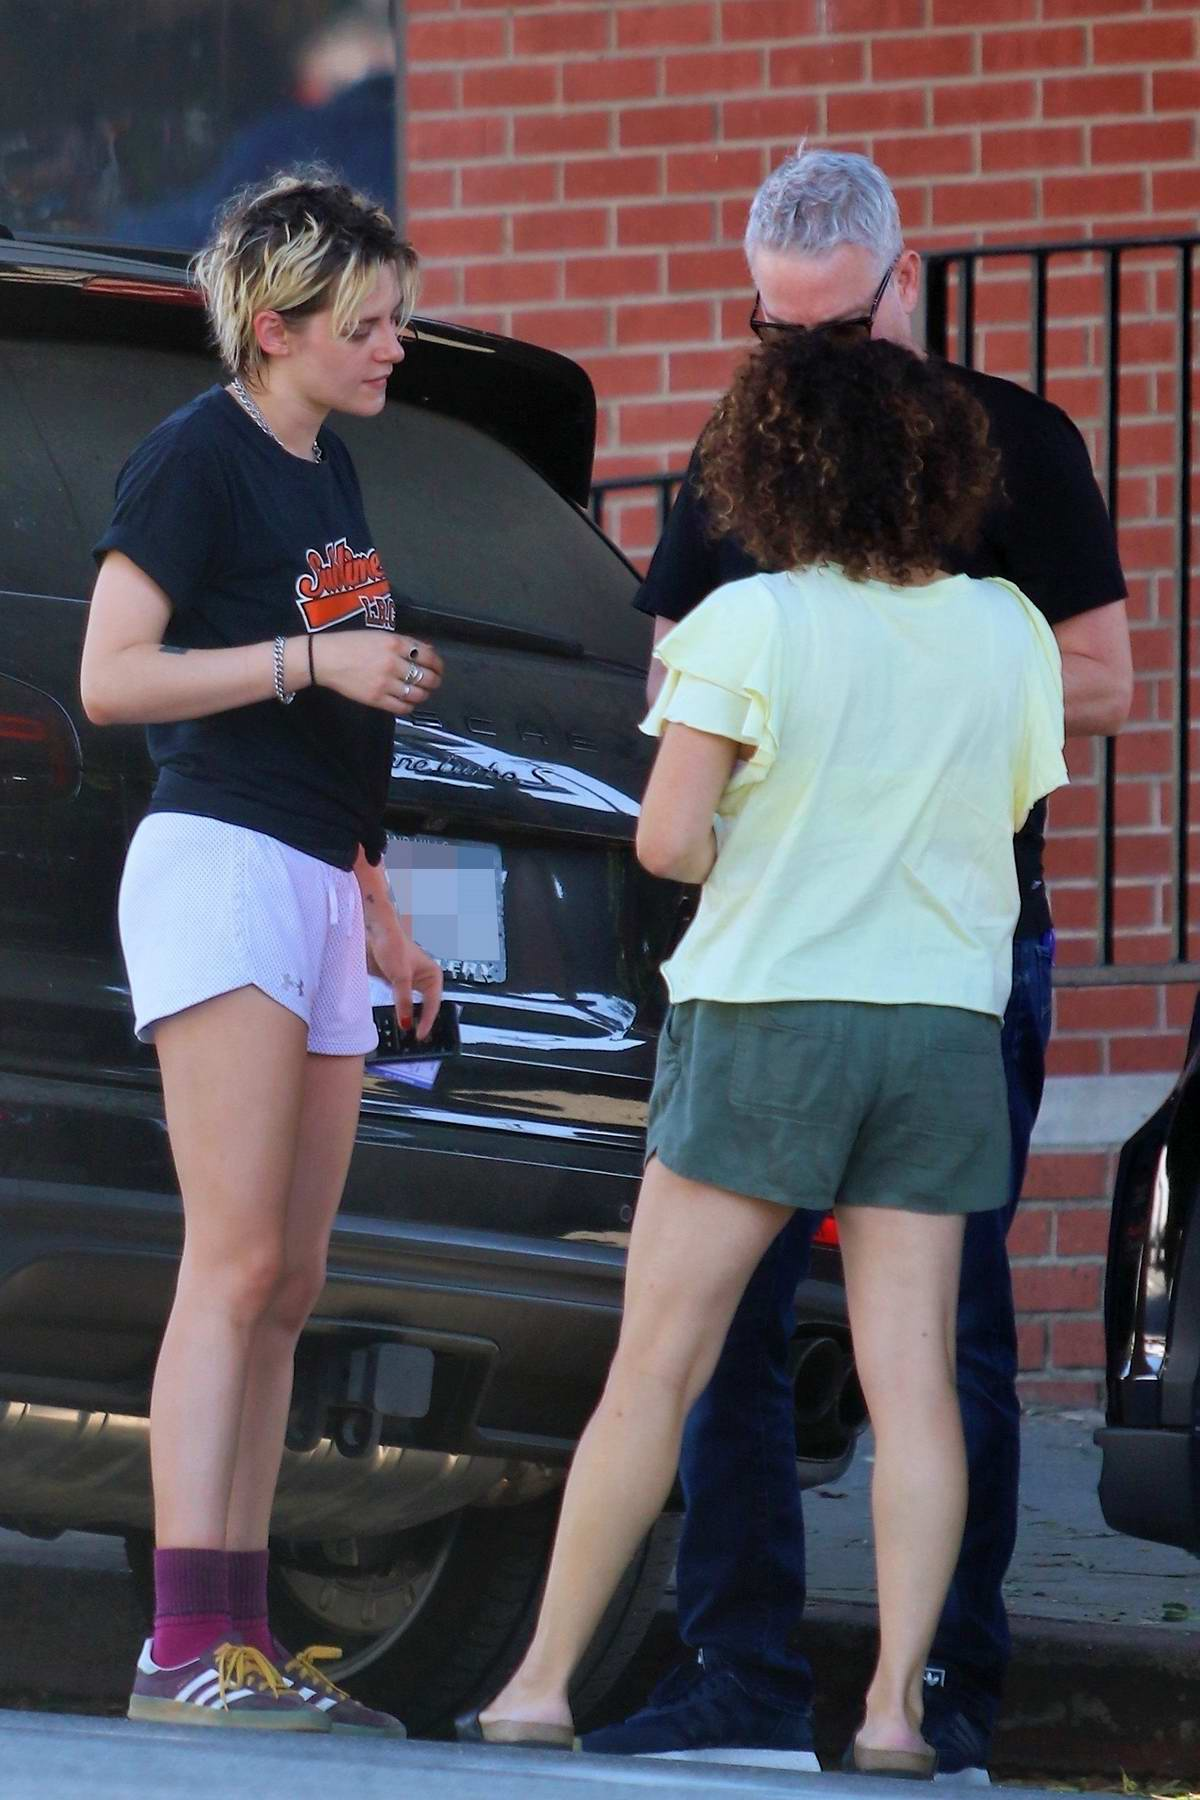 Kristen Stewart seen while exchanging information after a minor accident in Los Angeles